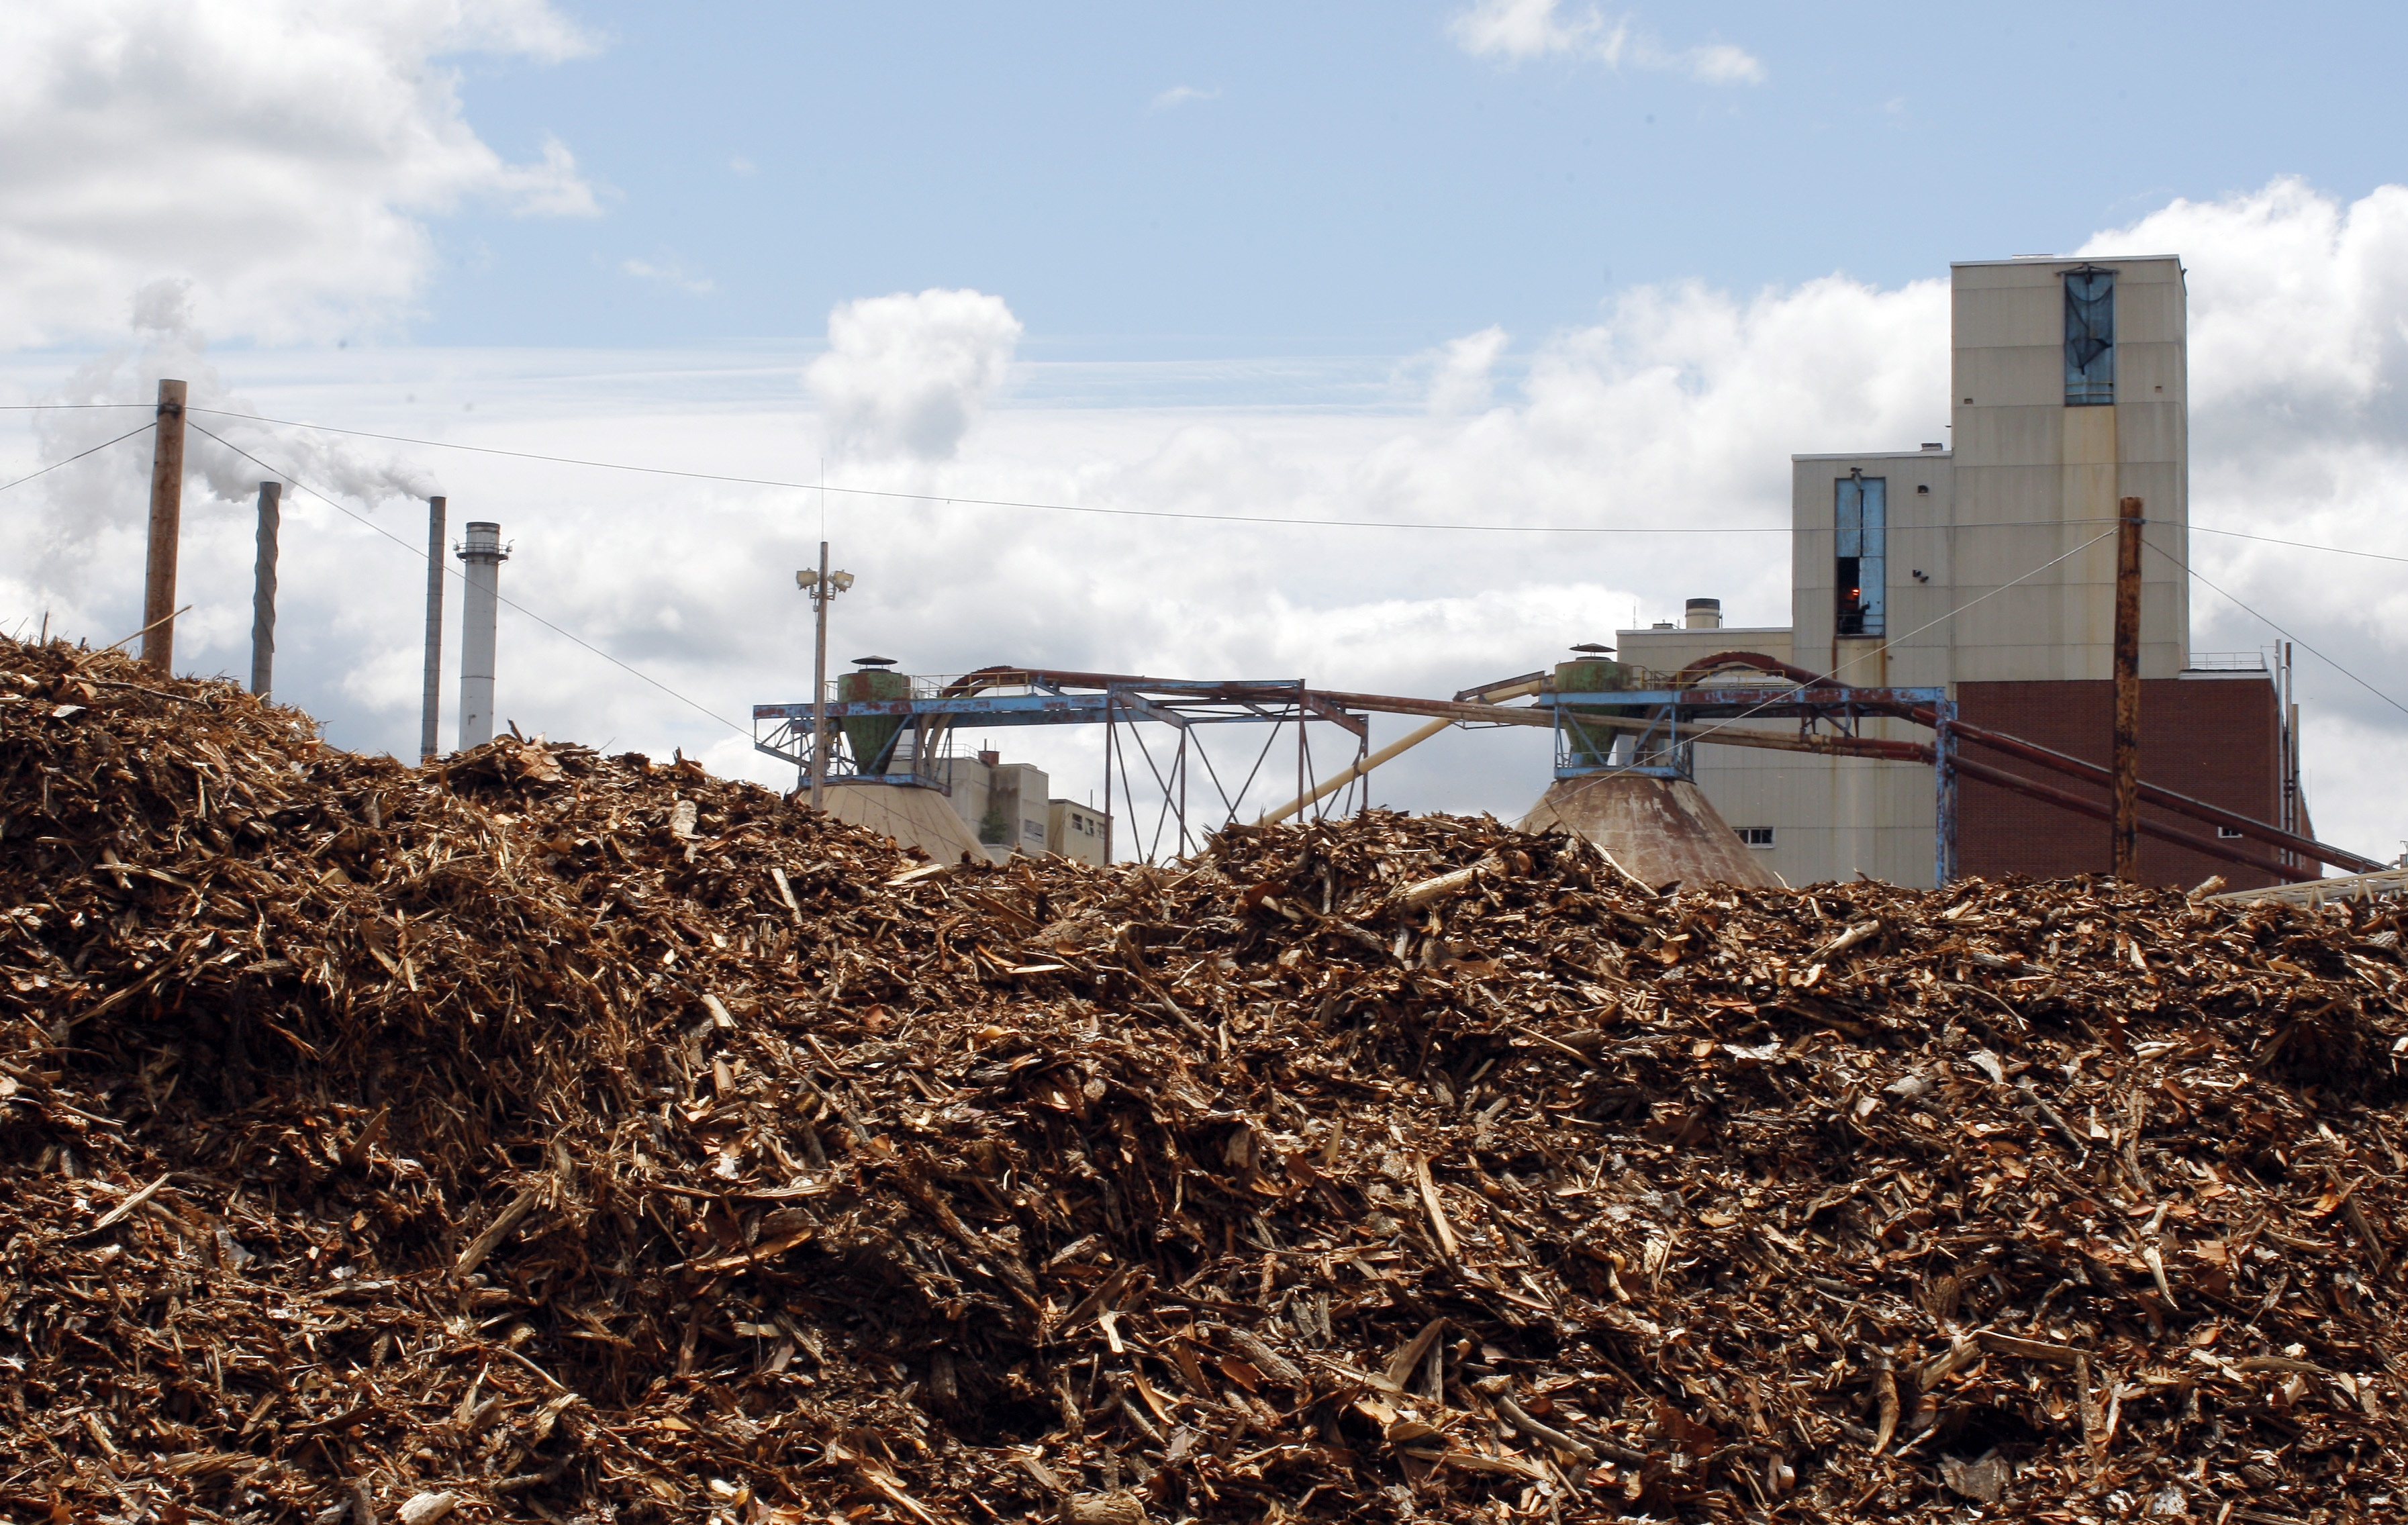 Burning Wood Biomass ~ Biomass energy plants losing in competition with solar as